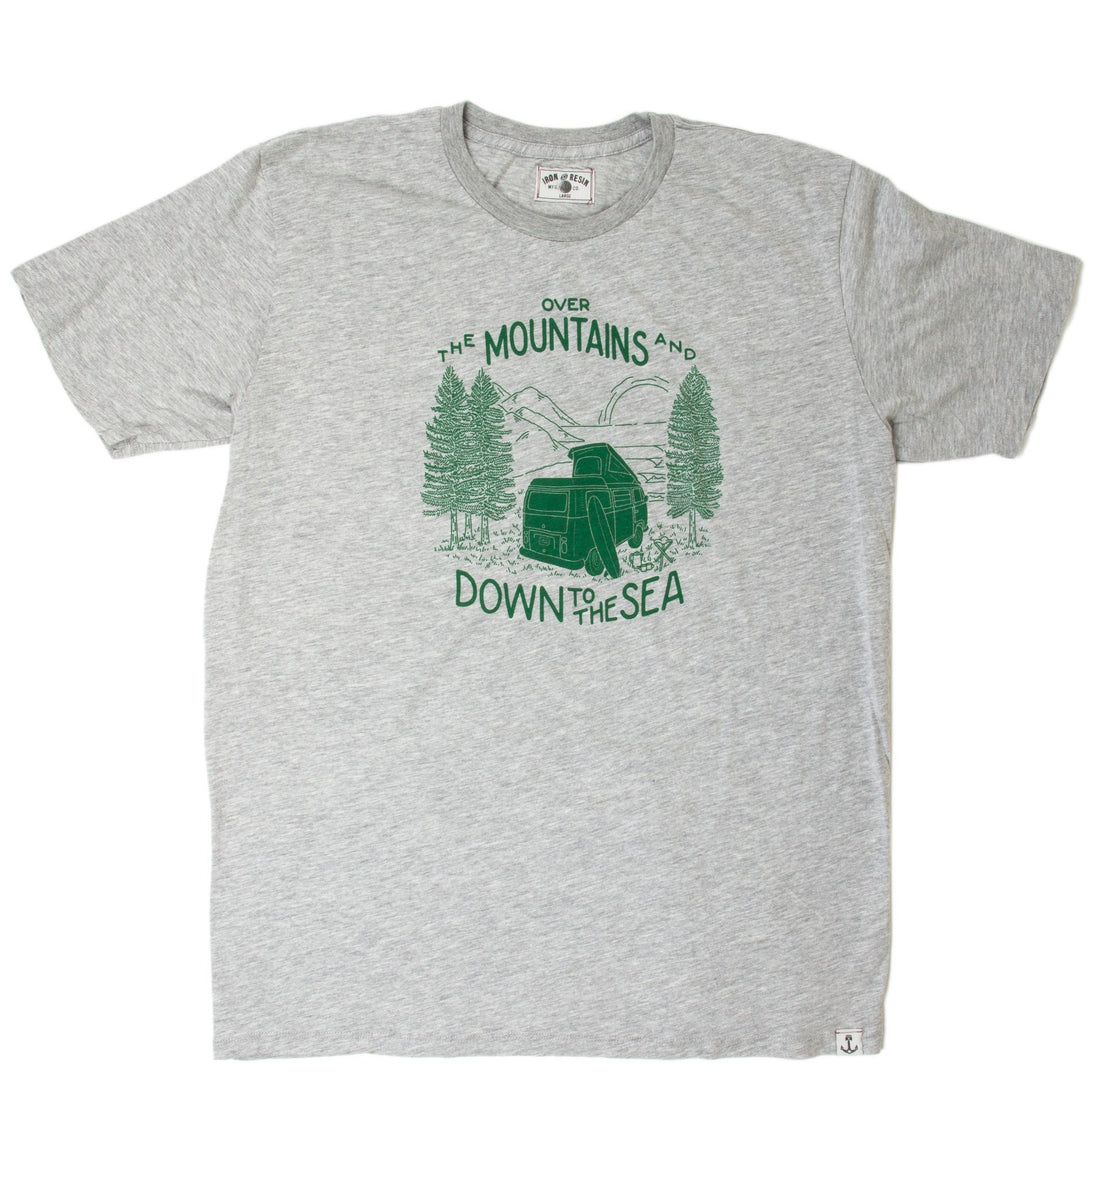 INR Over The Mountains Tee - Apparel: Men's: Graphic T-Shirts - Iron and Resin